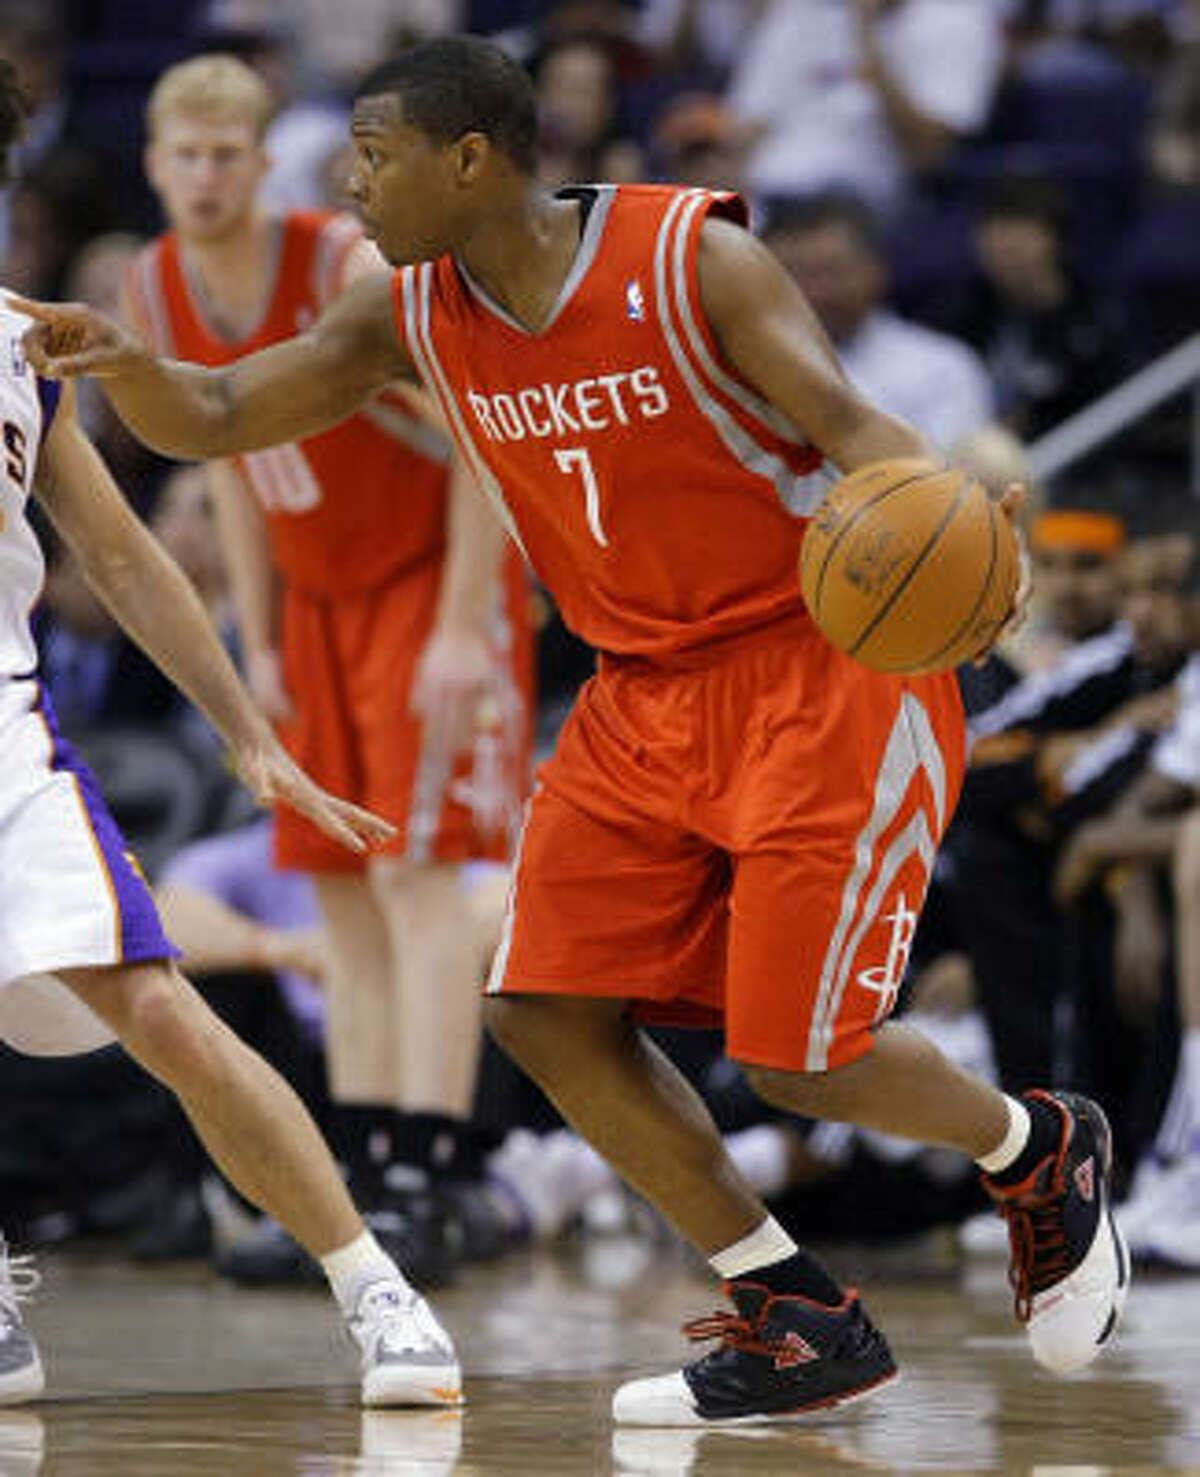 Rockets guard Kyle Lowry pushes the ball upcourt.